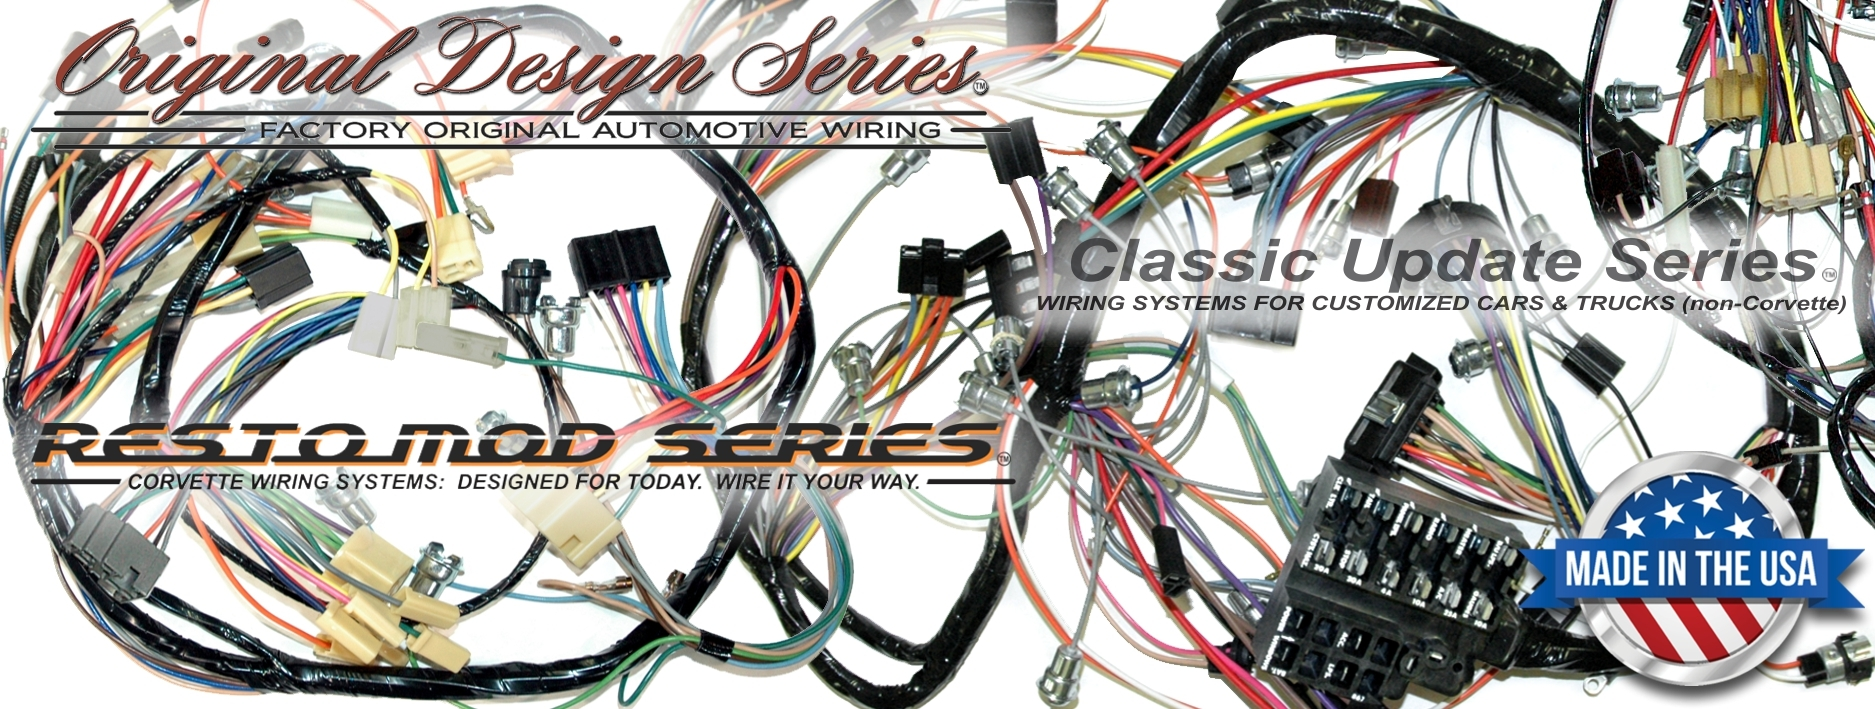 new header wiring_harnesses exact oem reproduction wiring harnesses and restomod wiring Custom Automotive Wiring Components at aneh.co